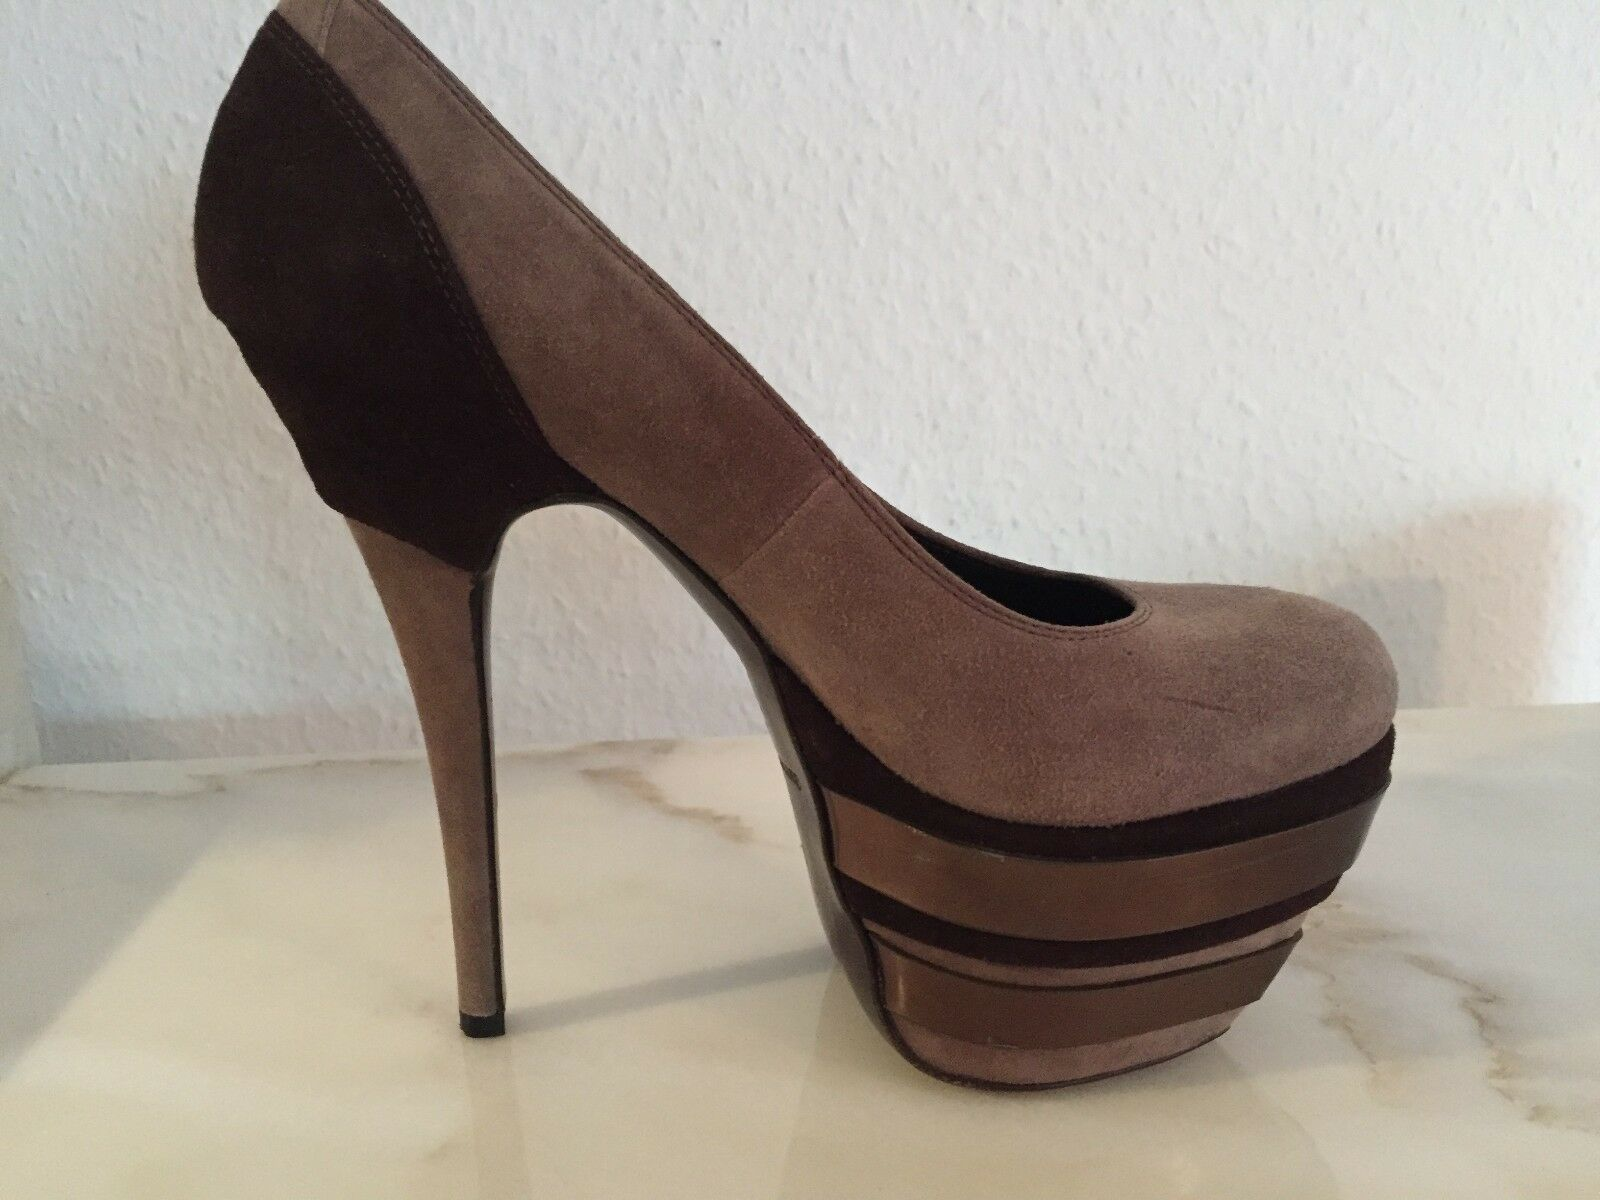 Gianmarco Lorenzi Damen Plateau High Heels Pumps in Größe 36,5